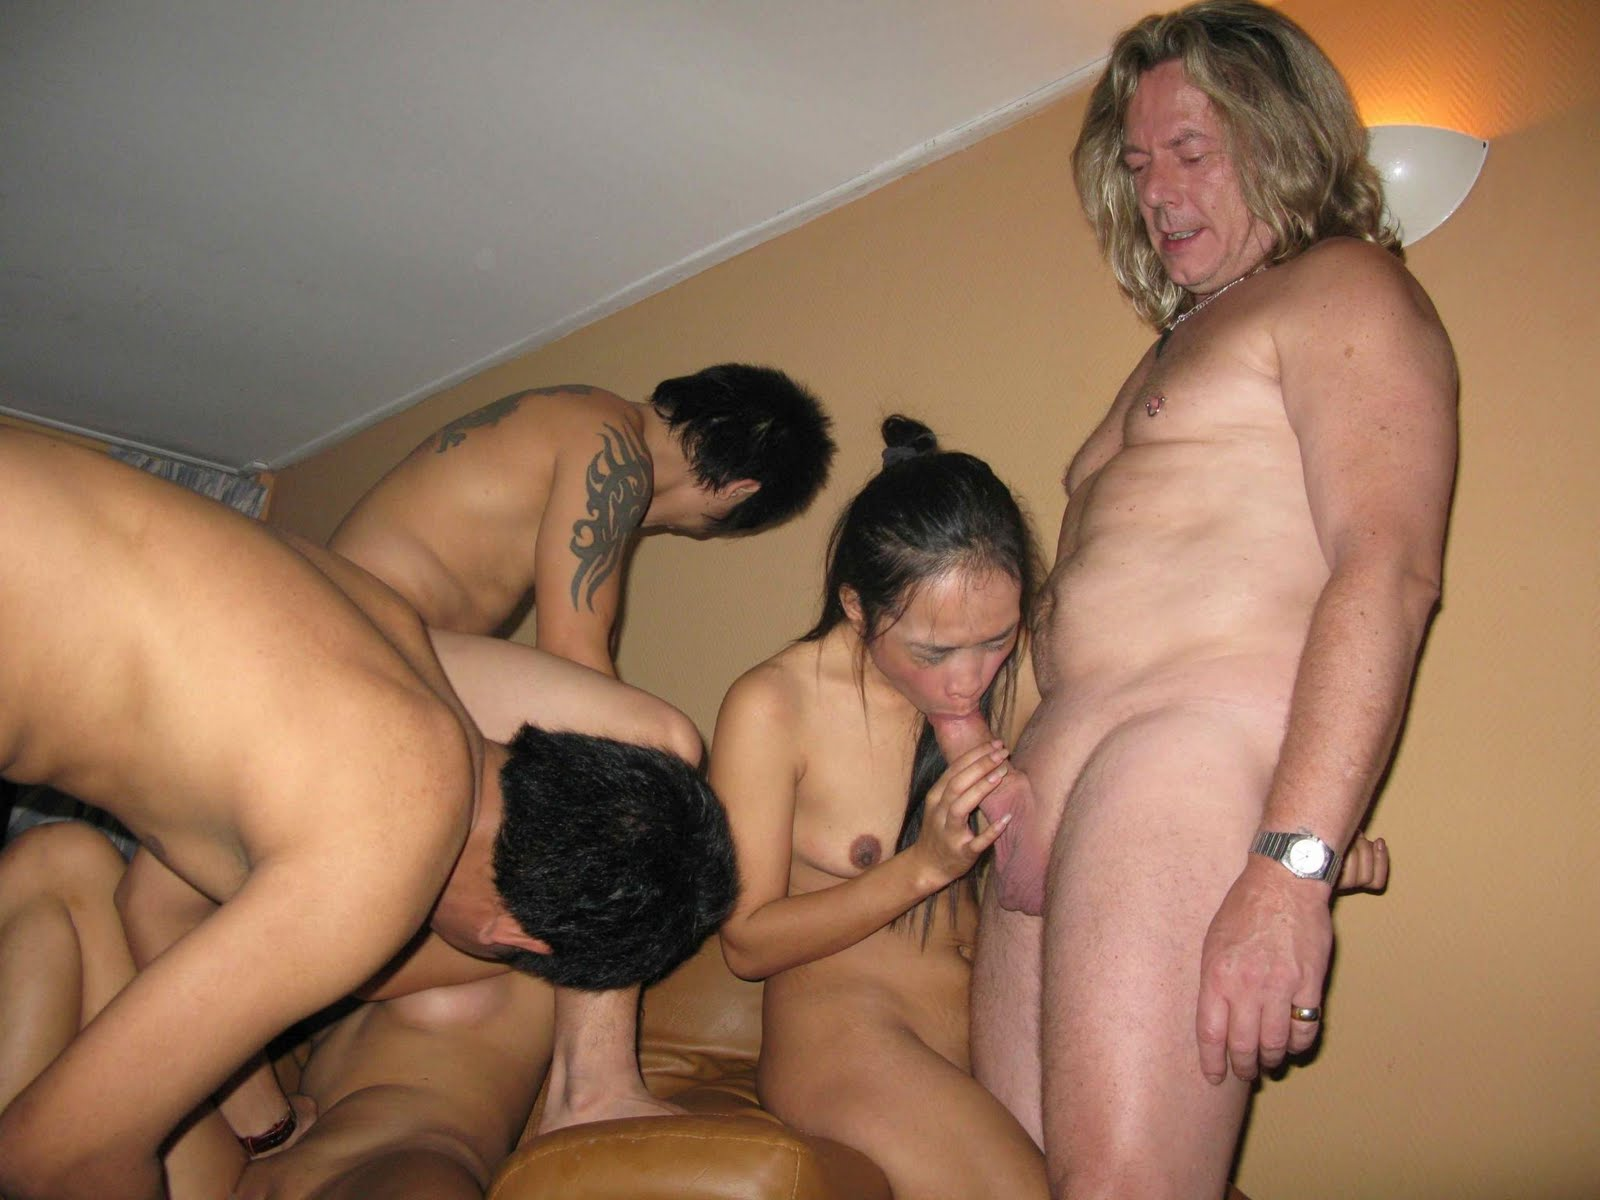 Think, group sex orgy blogspot that would without